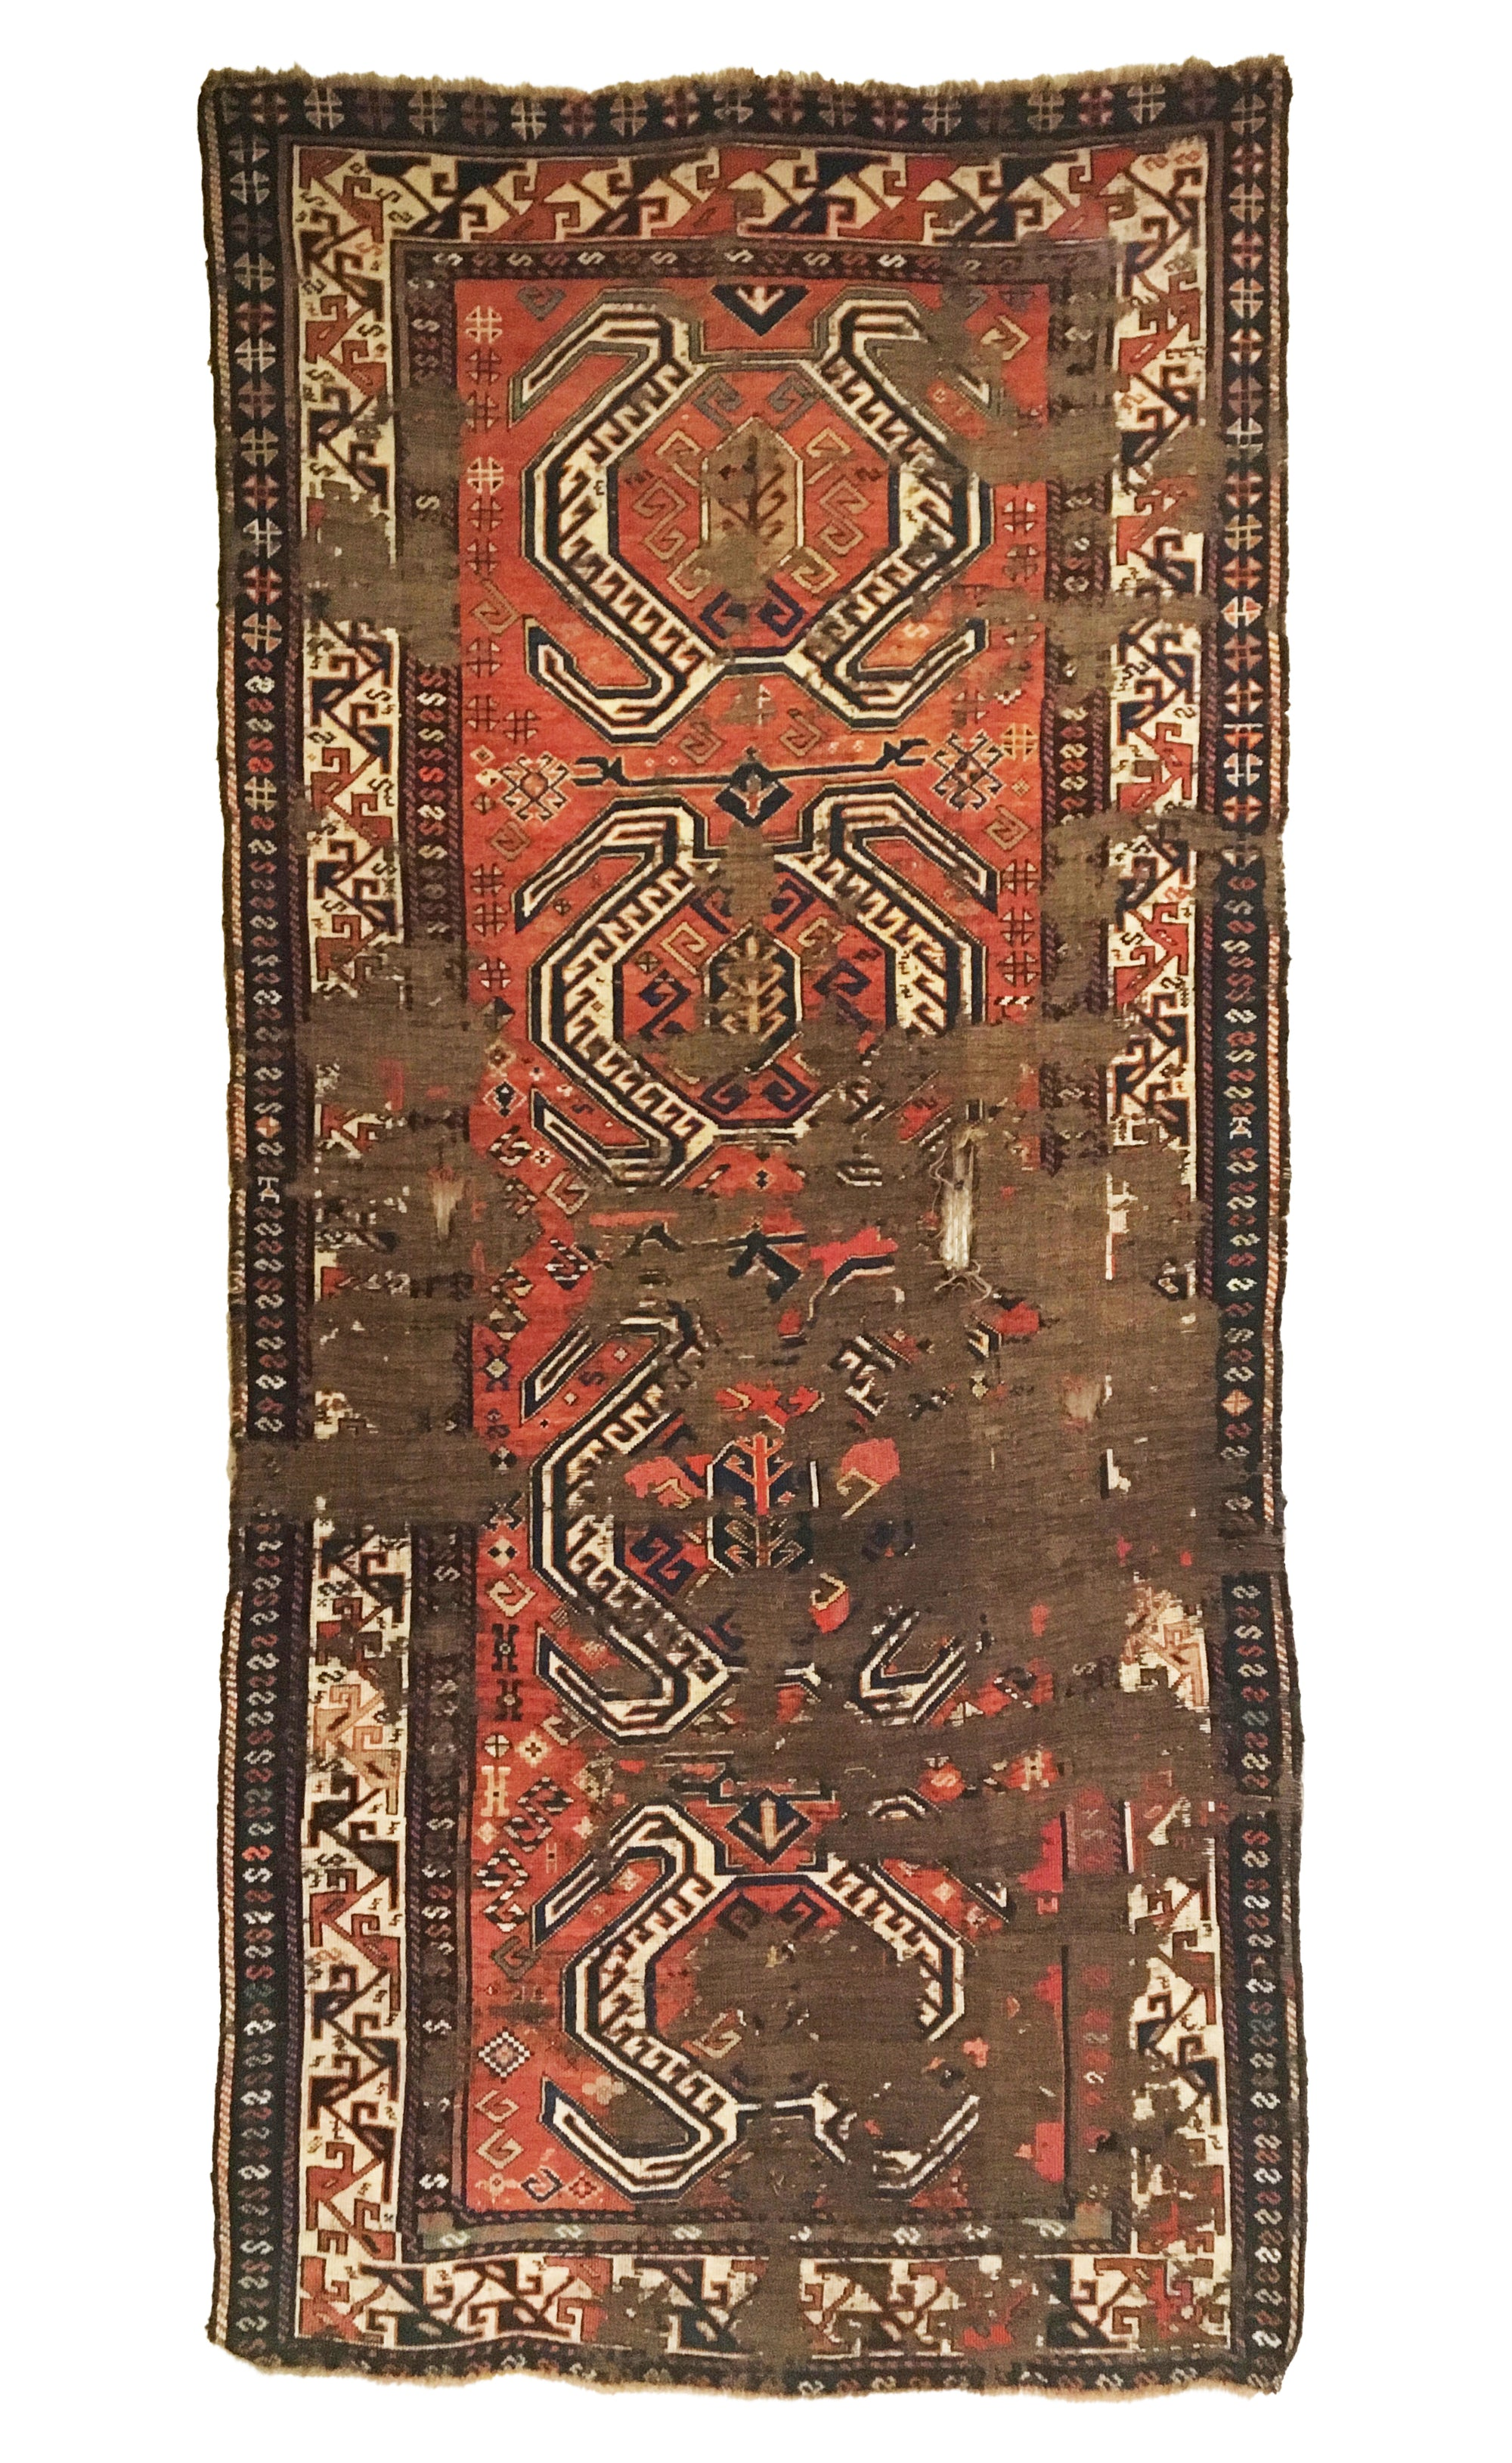 Antique Persian Shahsavan Distressed Long Rug 4'3 x 9'1